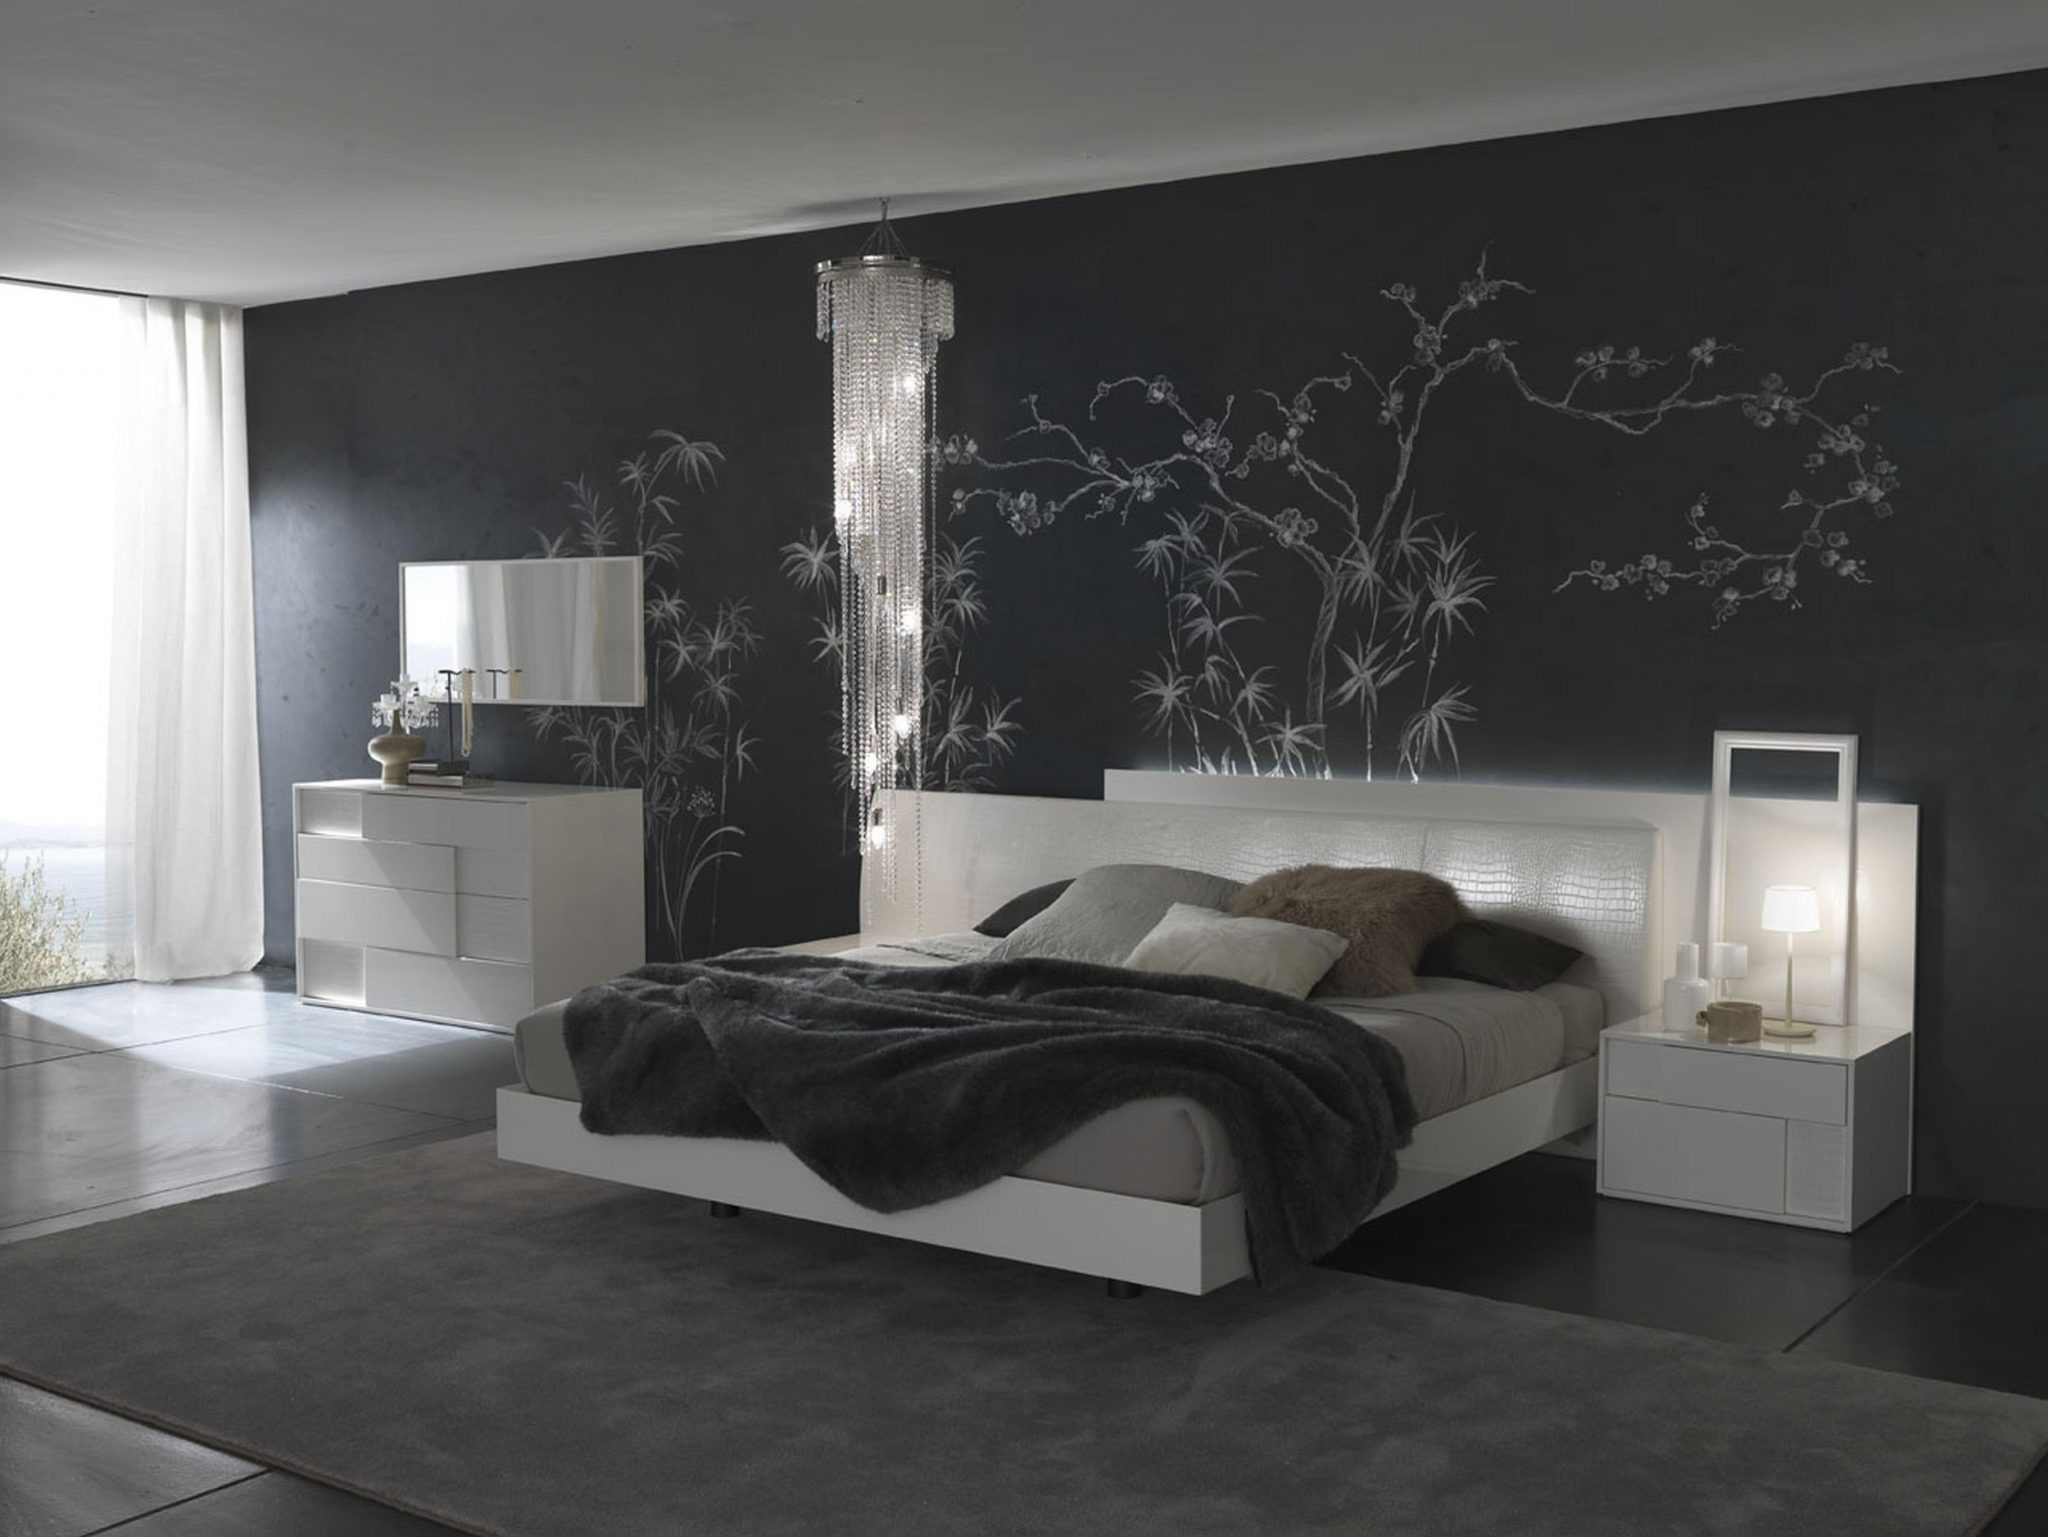 Bedroom Color and Design Ideas